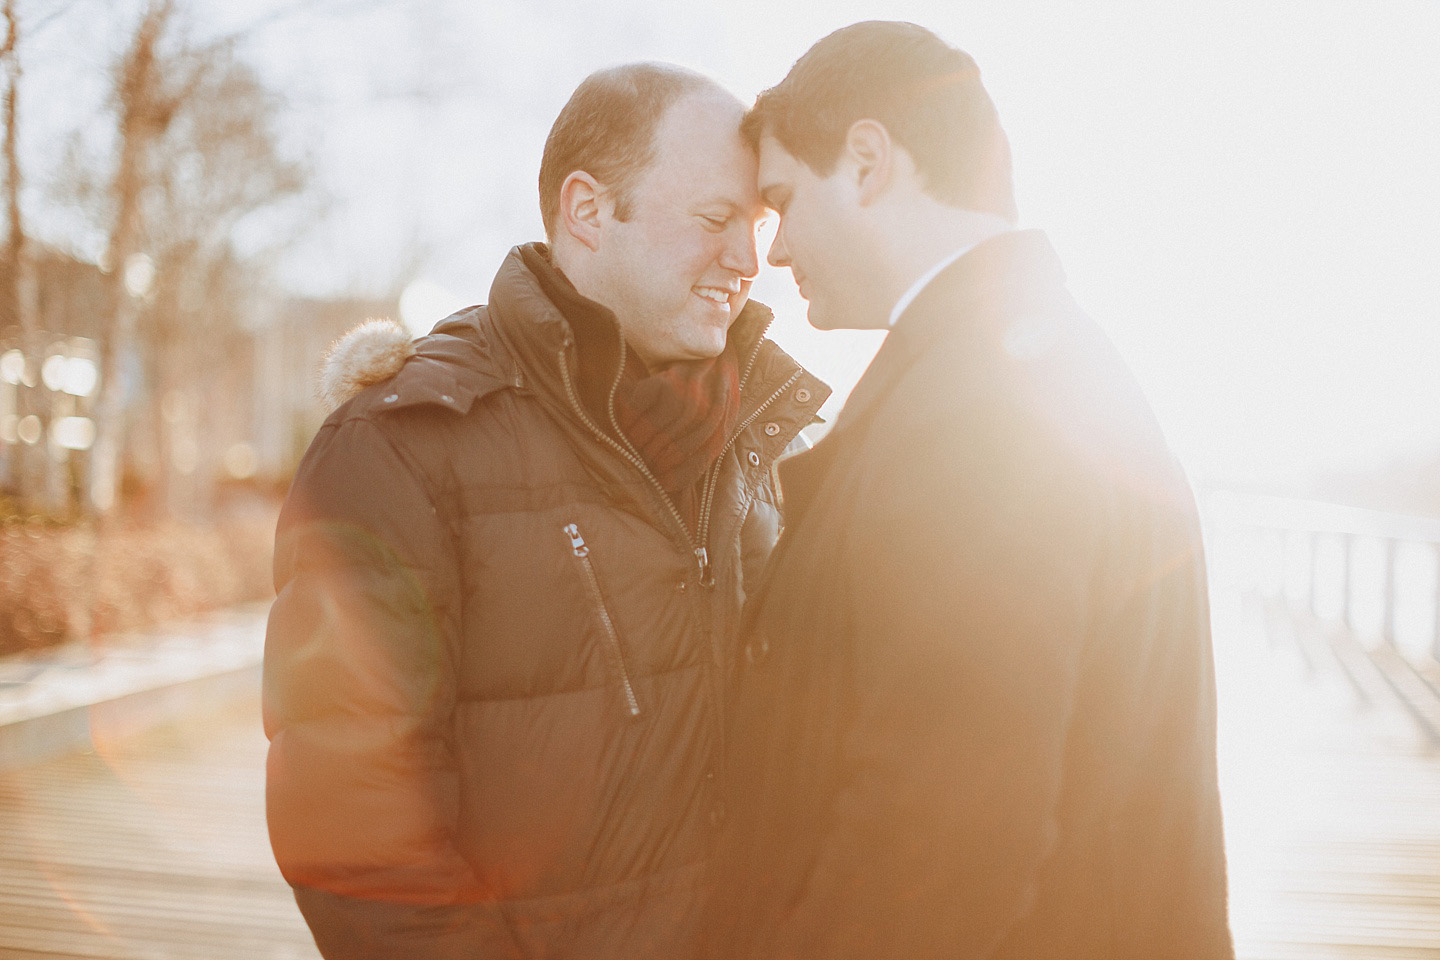 002 DC gay engagement photos